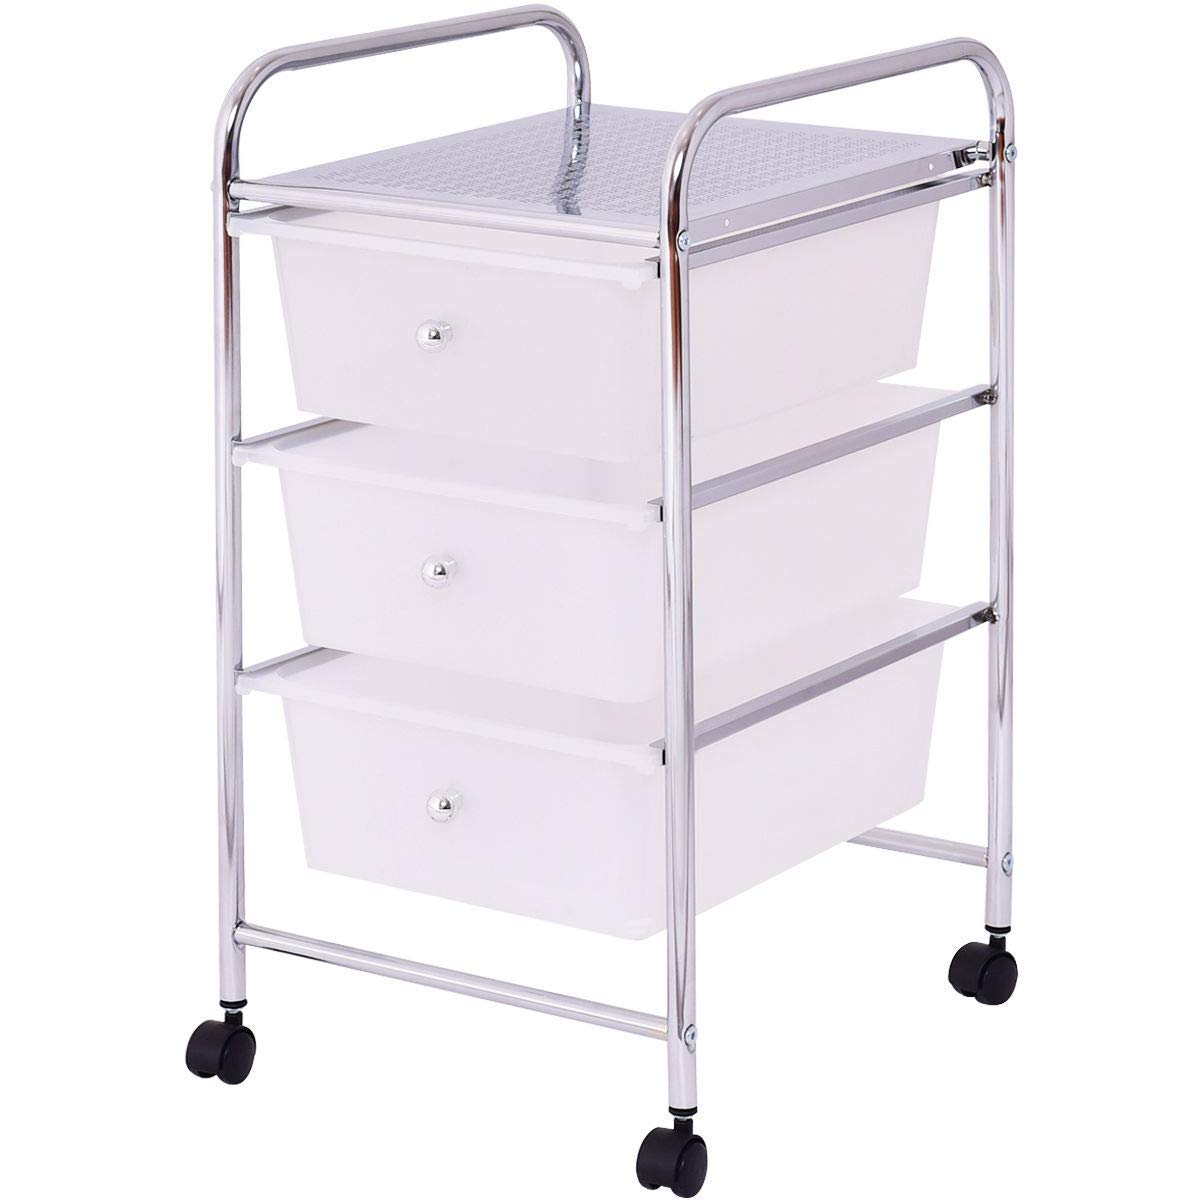 USA_Best_Seller 3 Drawers New White Metal Rolling Storage Cart Home Office Dining Room Storage Organizer Stylish Mobile Drawers Sturdy Steel Frame Storing Products Books Linen Display